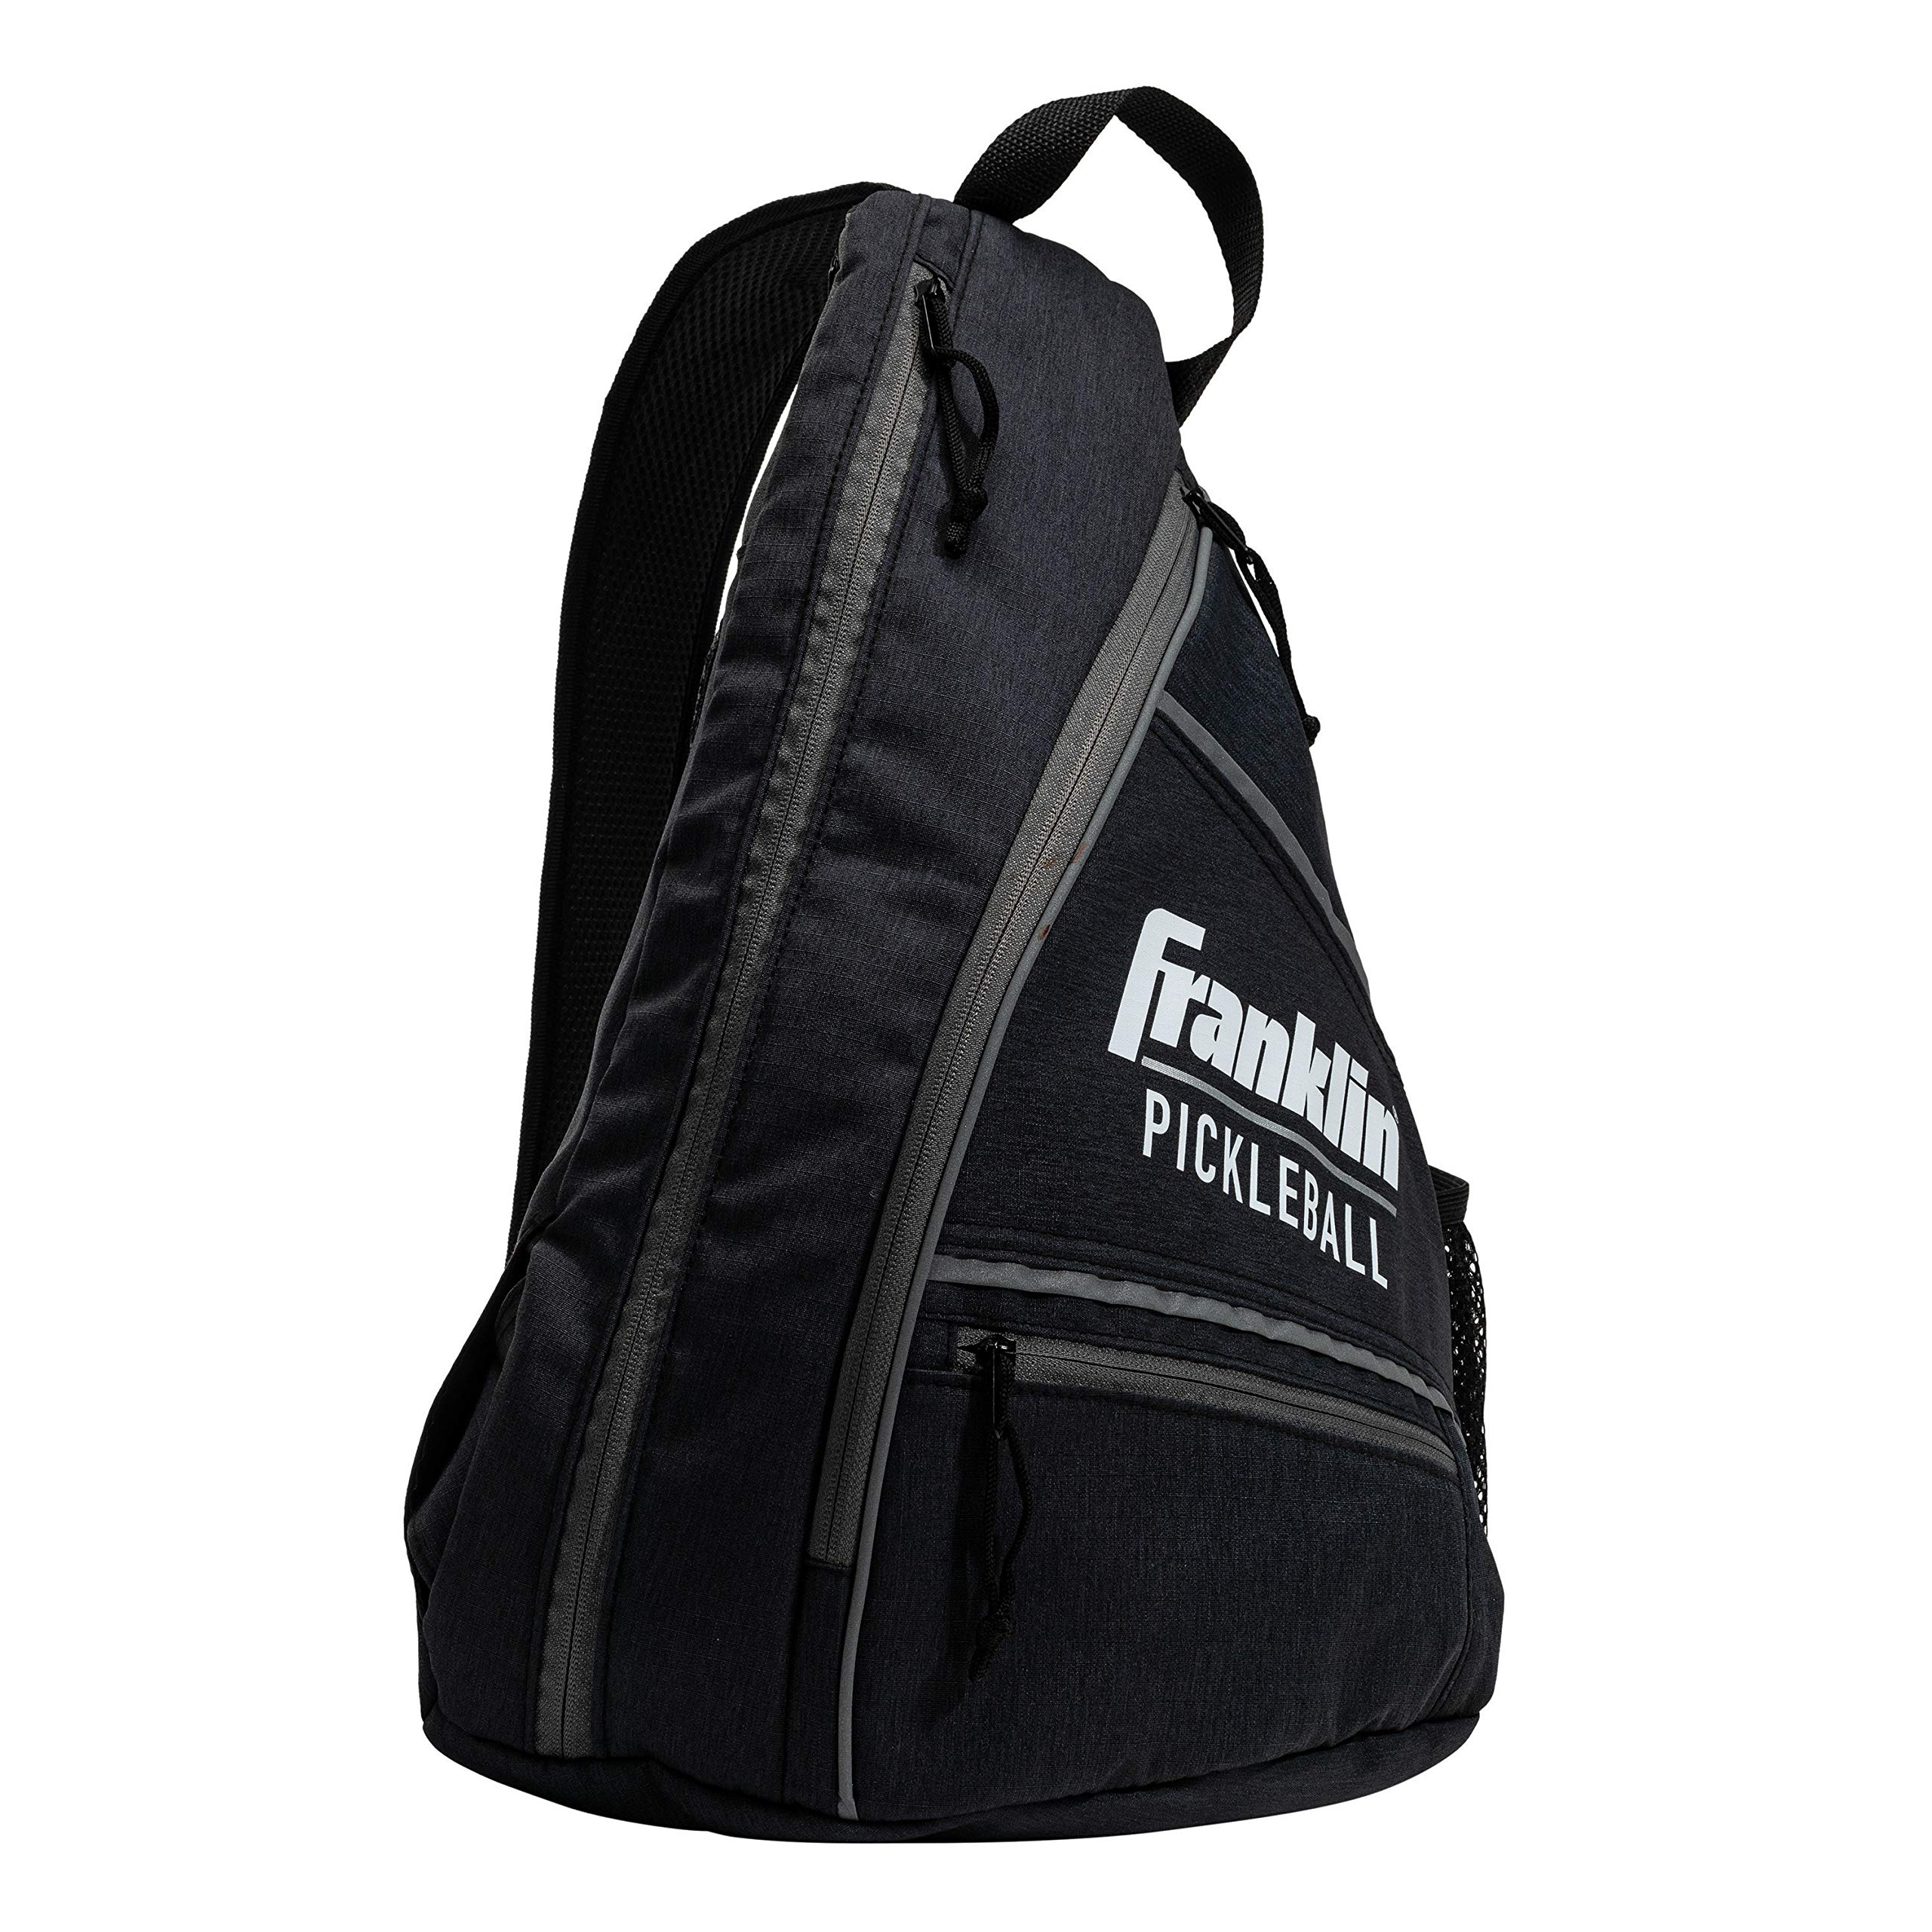 Franklin Sports Pickleball Sling Bag - Official Pickleball Bag of The U.S. Open Pickleball Championships - Adjustable - Charcoal Gray by Franklin Sports